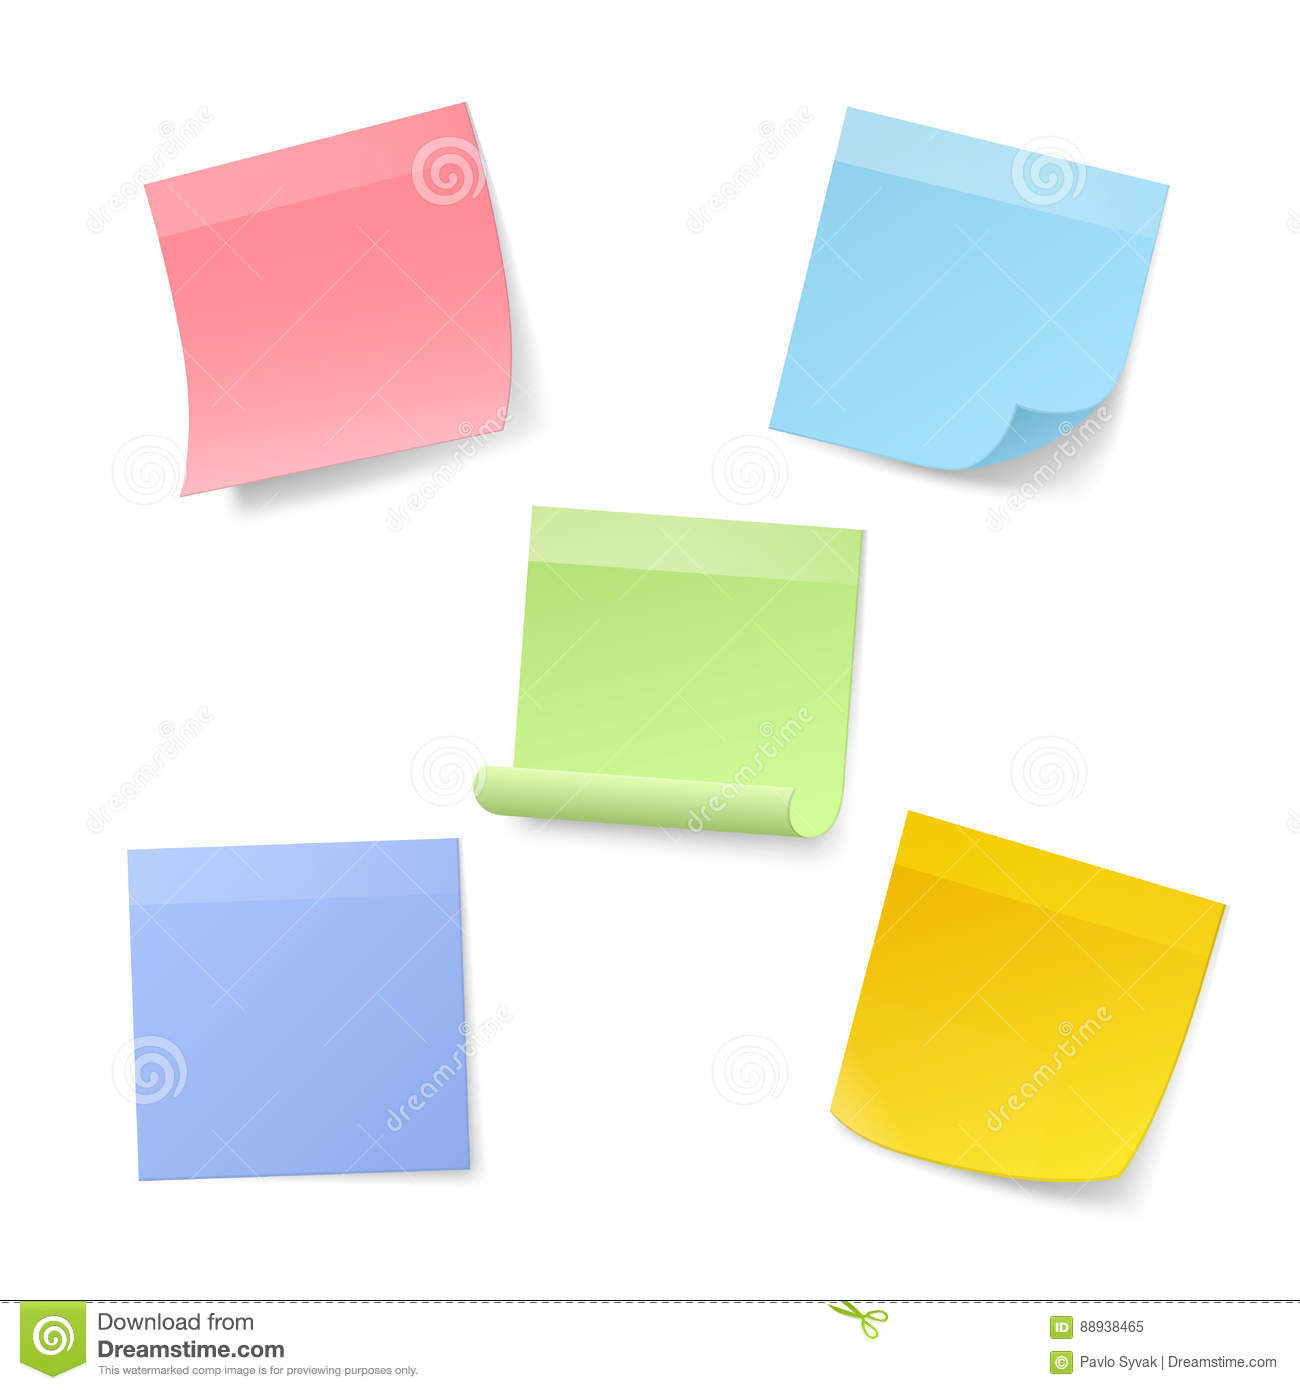 Free vector graphic sticky note note info paper free image on - Royalty Free Vector Blank Illustration Note Realistic Sticky Vector Pad Pin Sheet Isolated Graphic Notepaper Paper